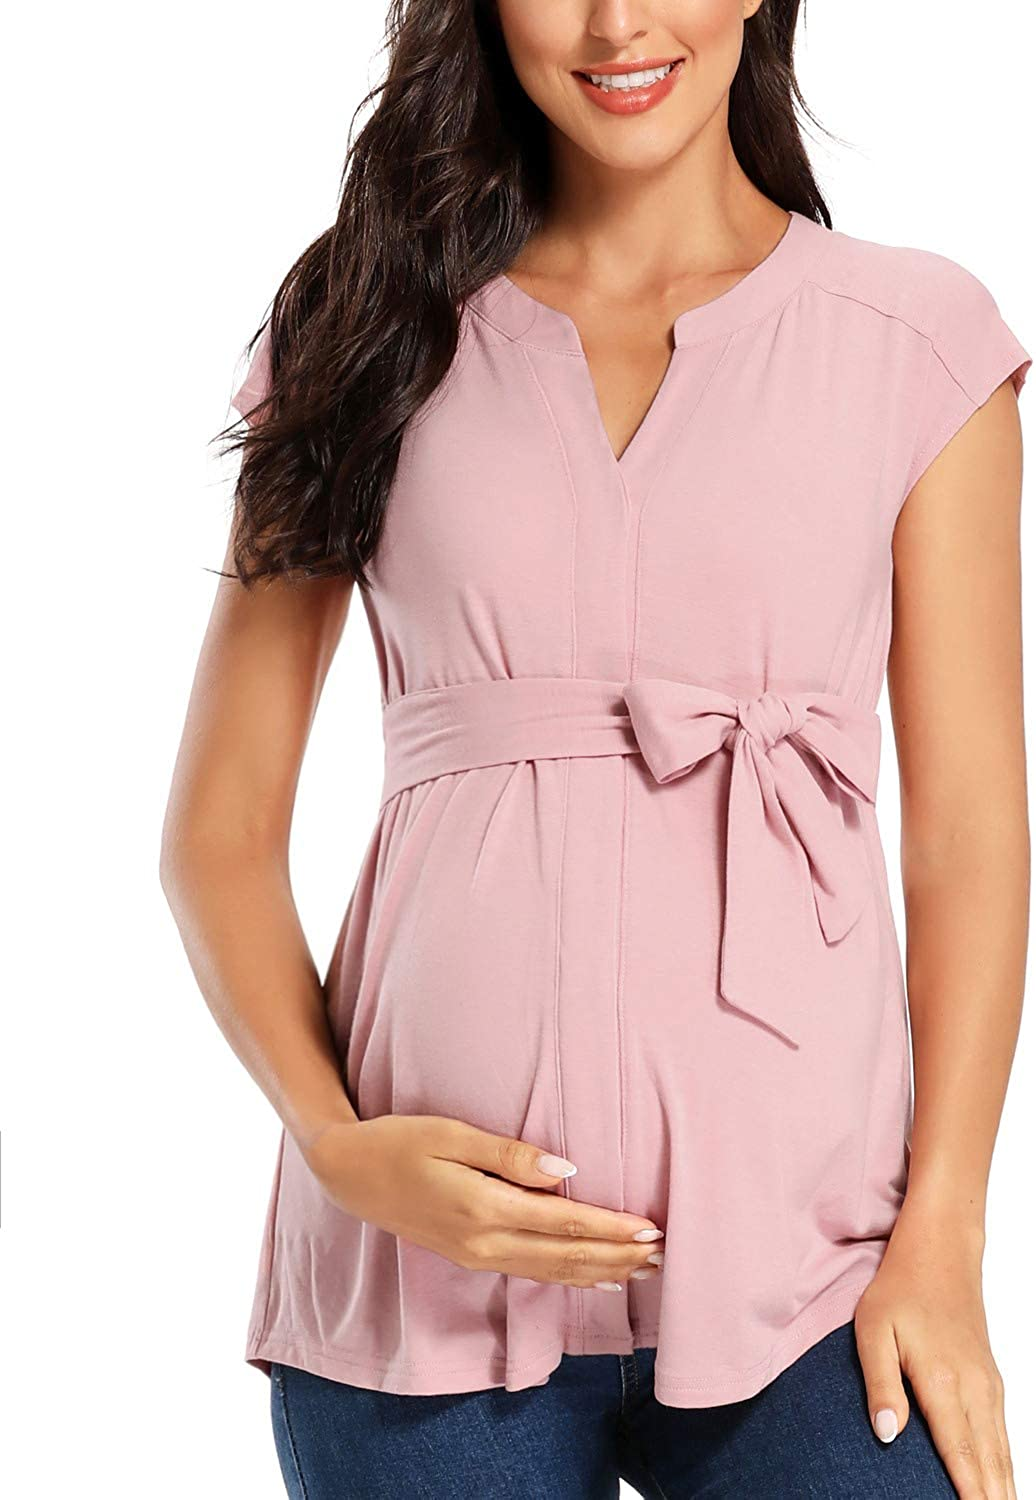 Glampunch Maternity Tops V Neck Limited price SleeveLong Sleeve Ca Ranking TOP1 Tunic